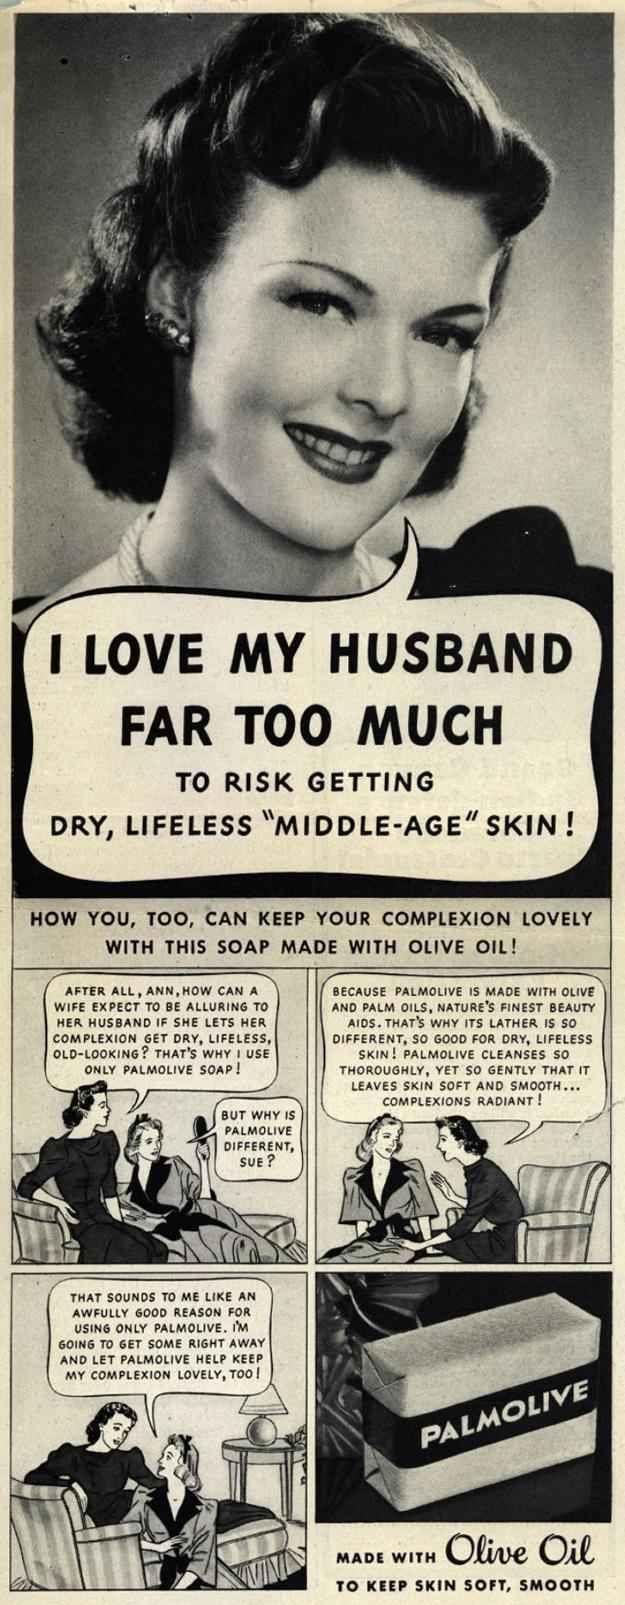 10 More Retro Ads That Made Women Look Like Idiots - BuzzFeed Mobile